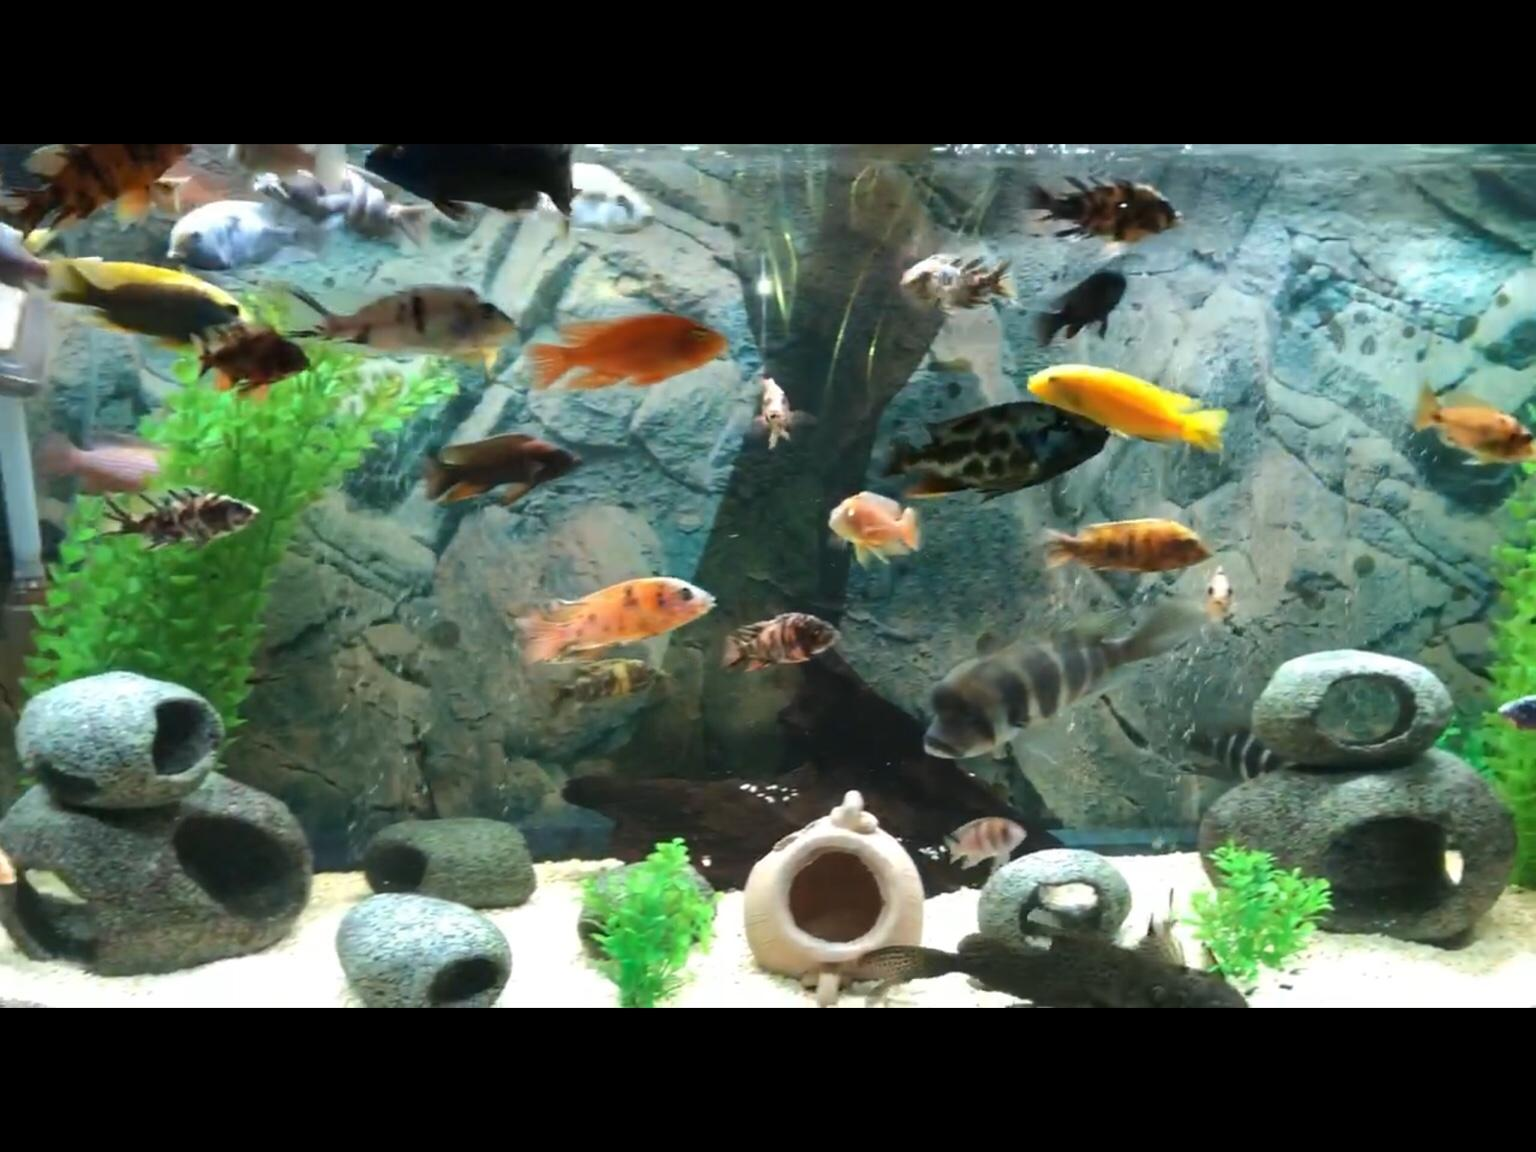 Malawi cichlids for sale in CR4 London for free for sale